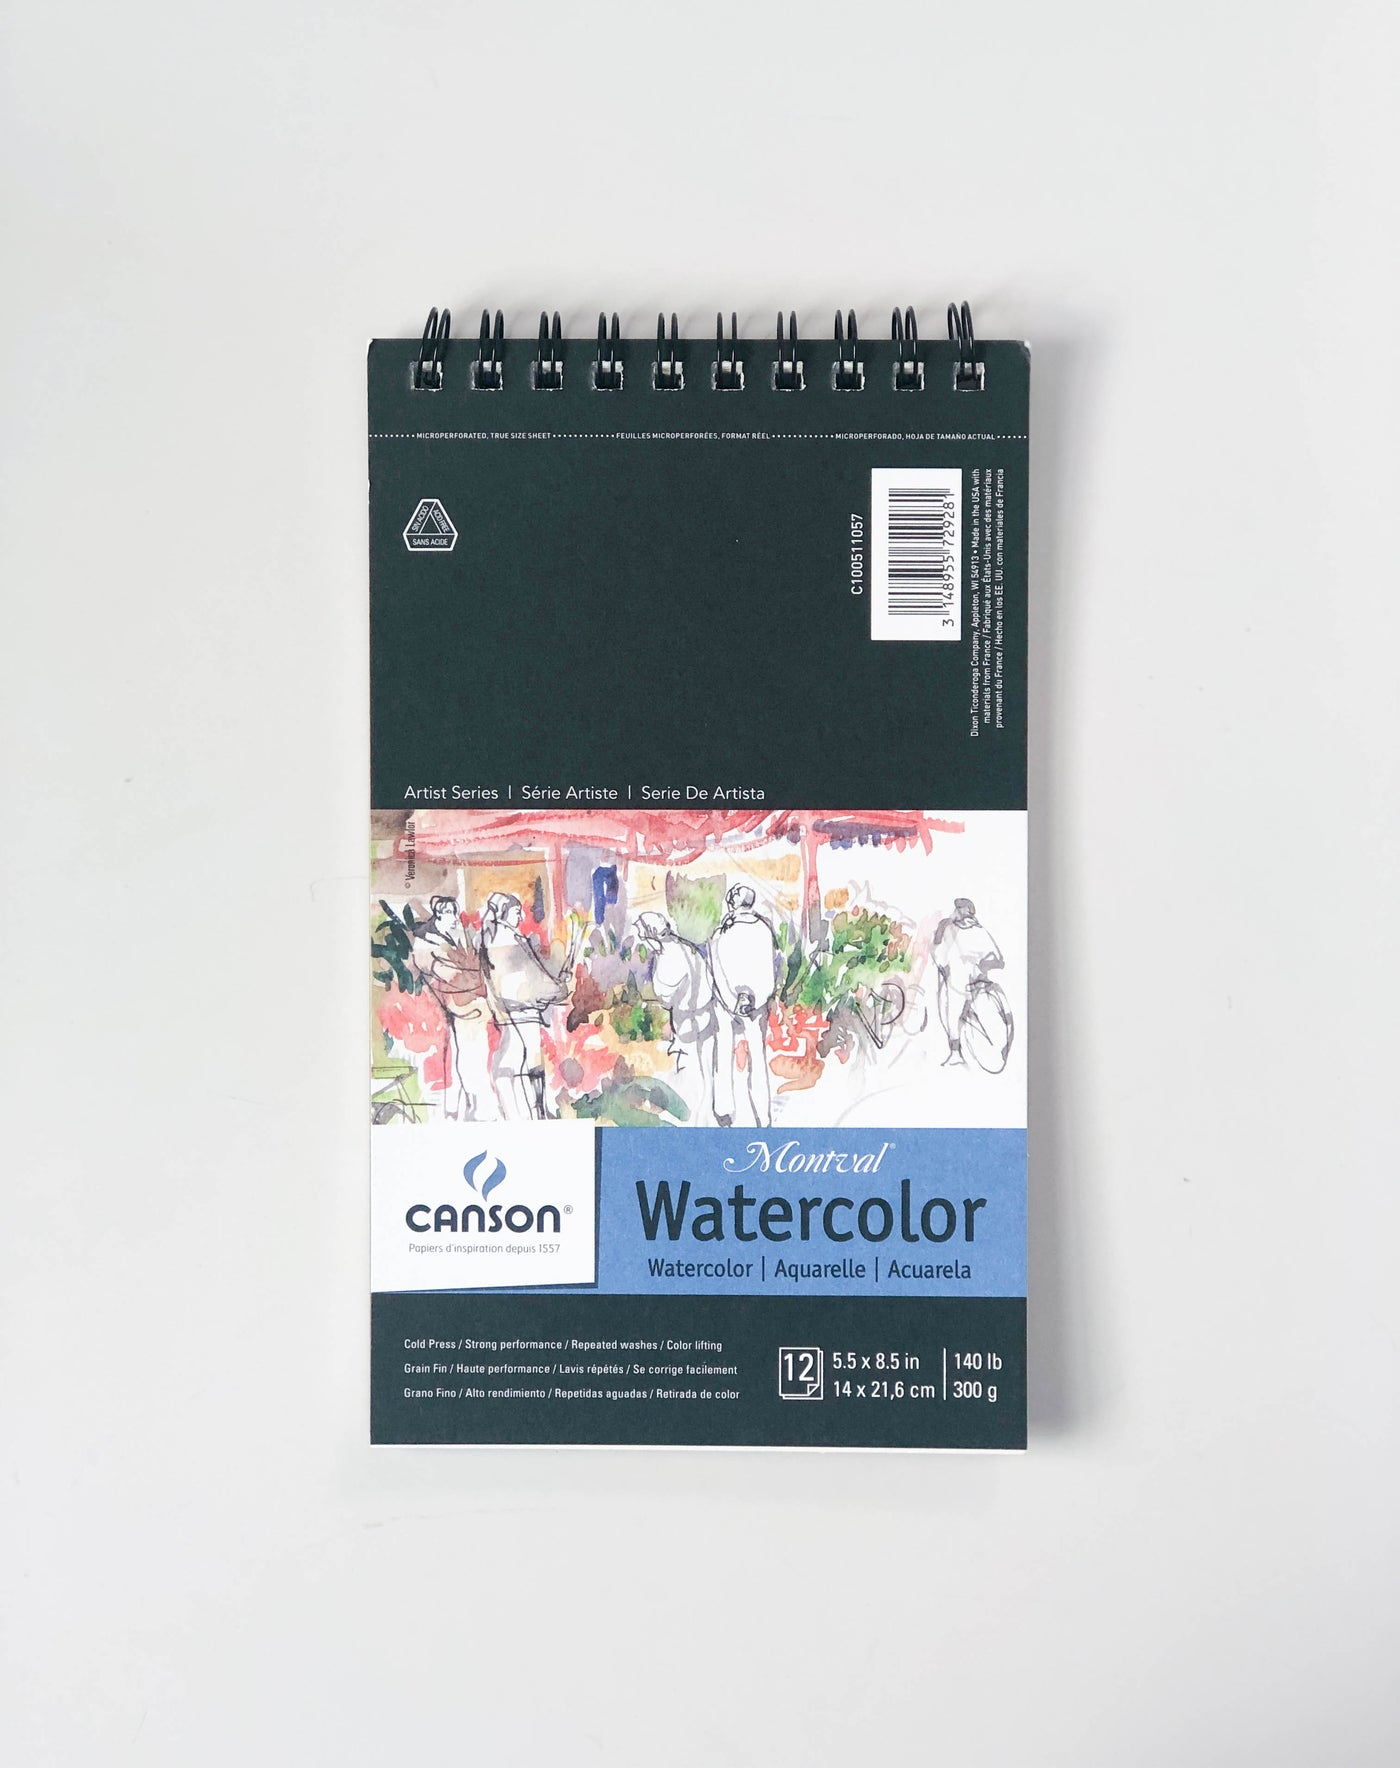 Canson Montreal Watercolor Paper | Cold Press, 5.5x8.5